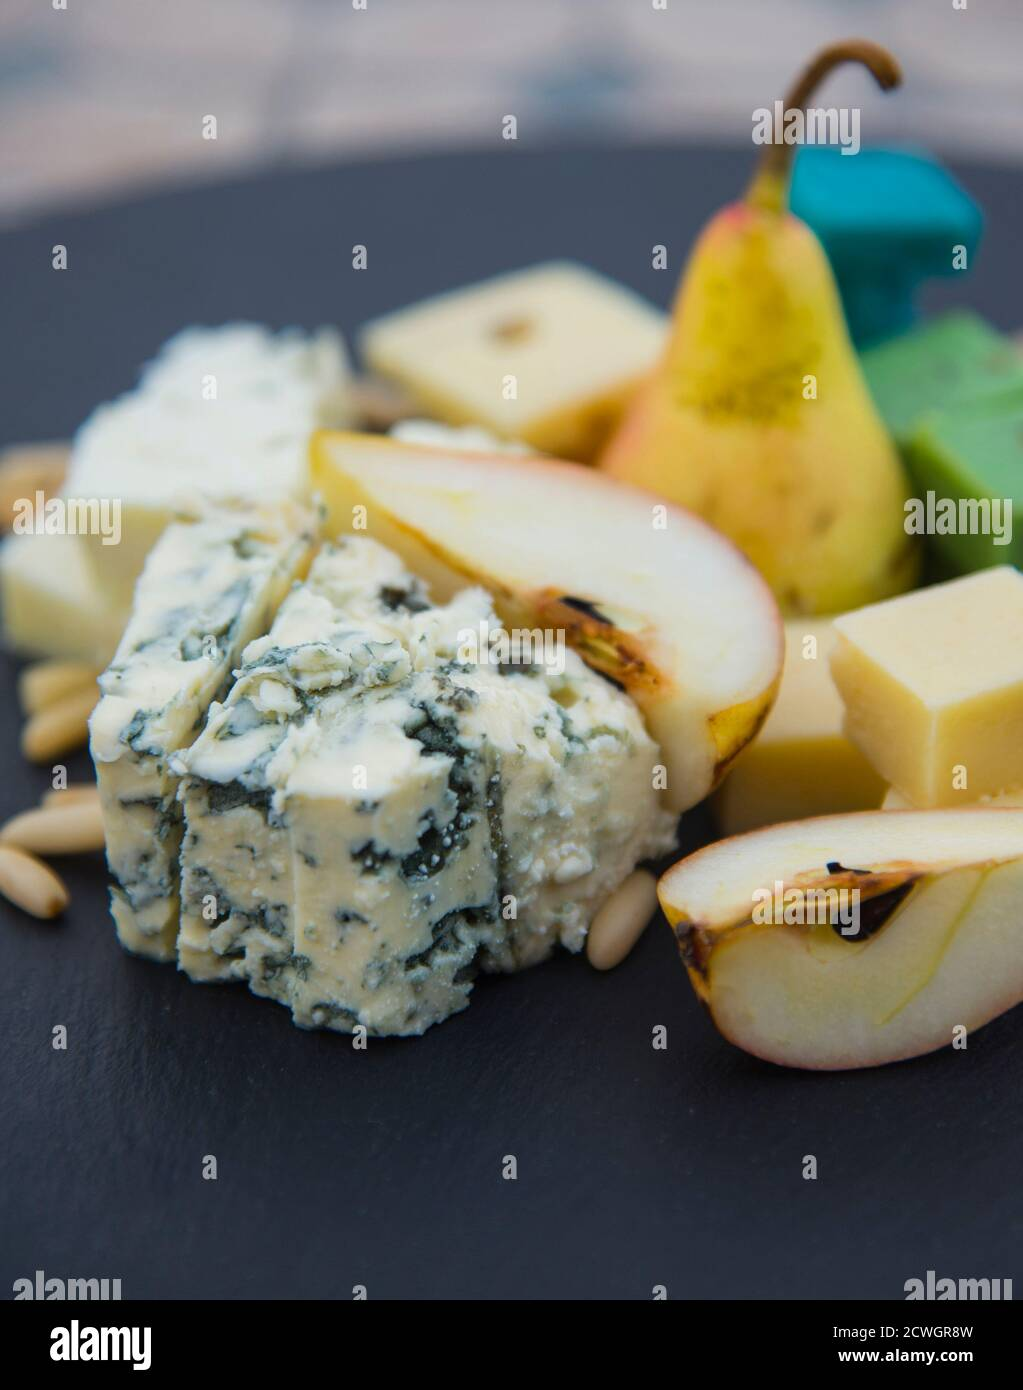 Pieces of various cheeses, ripe pears and pine nuts. Dairy product on the black plate Stock Photo